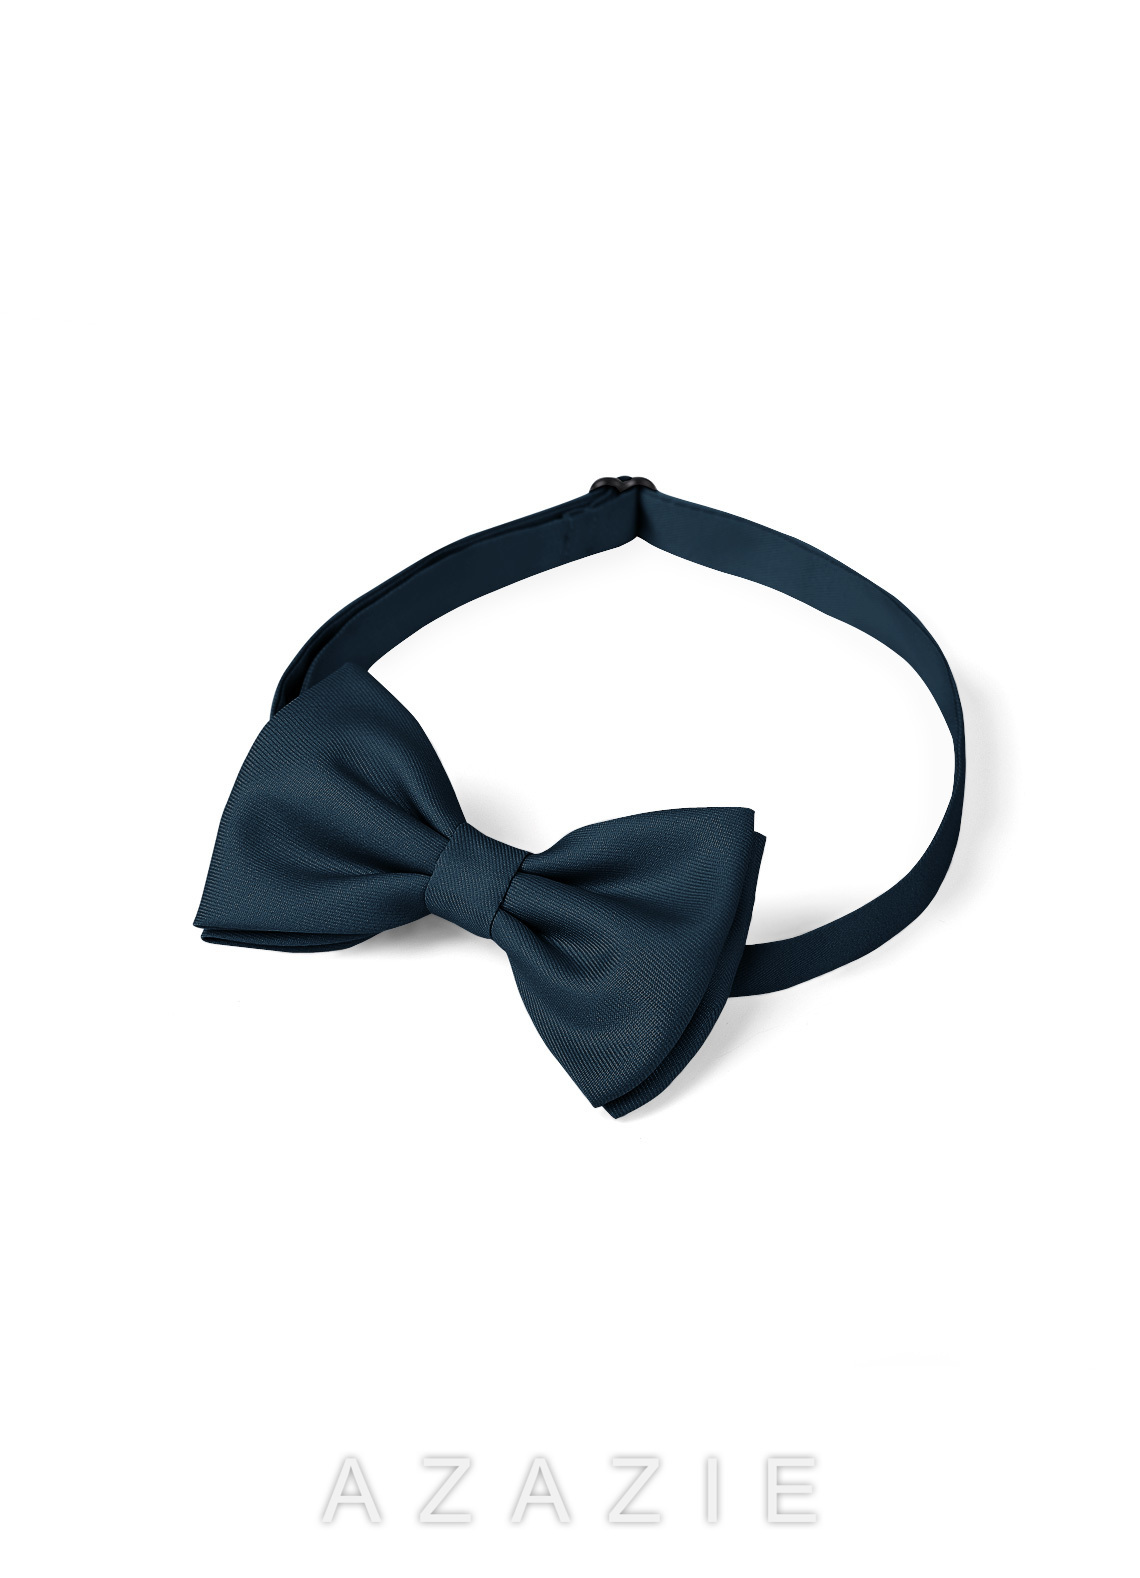 cf41c7365261 Gentlemen's Collection Boy's Pre-tied Bow Tie Groomsmen Accessory ...